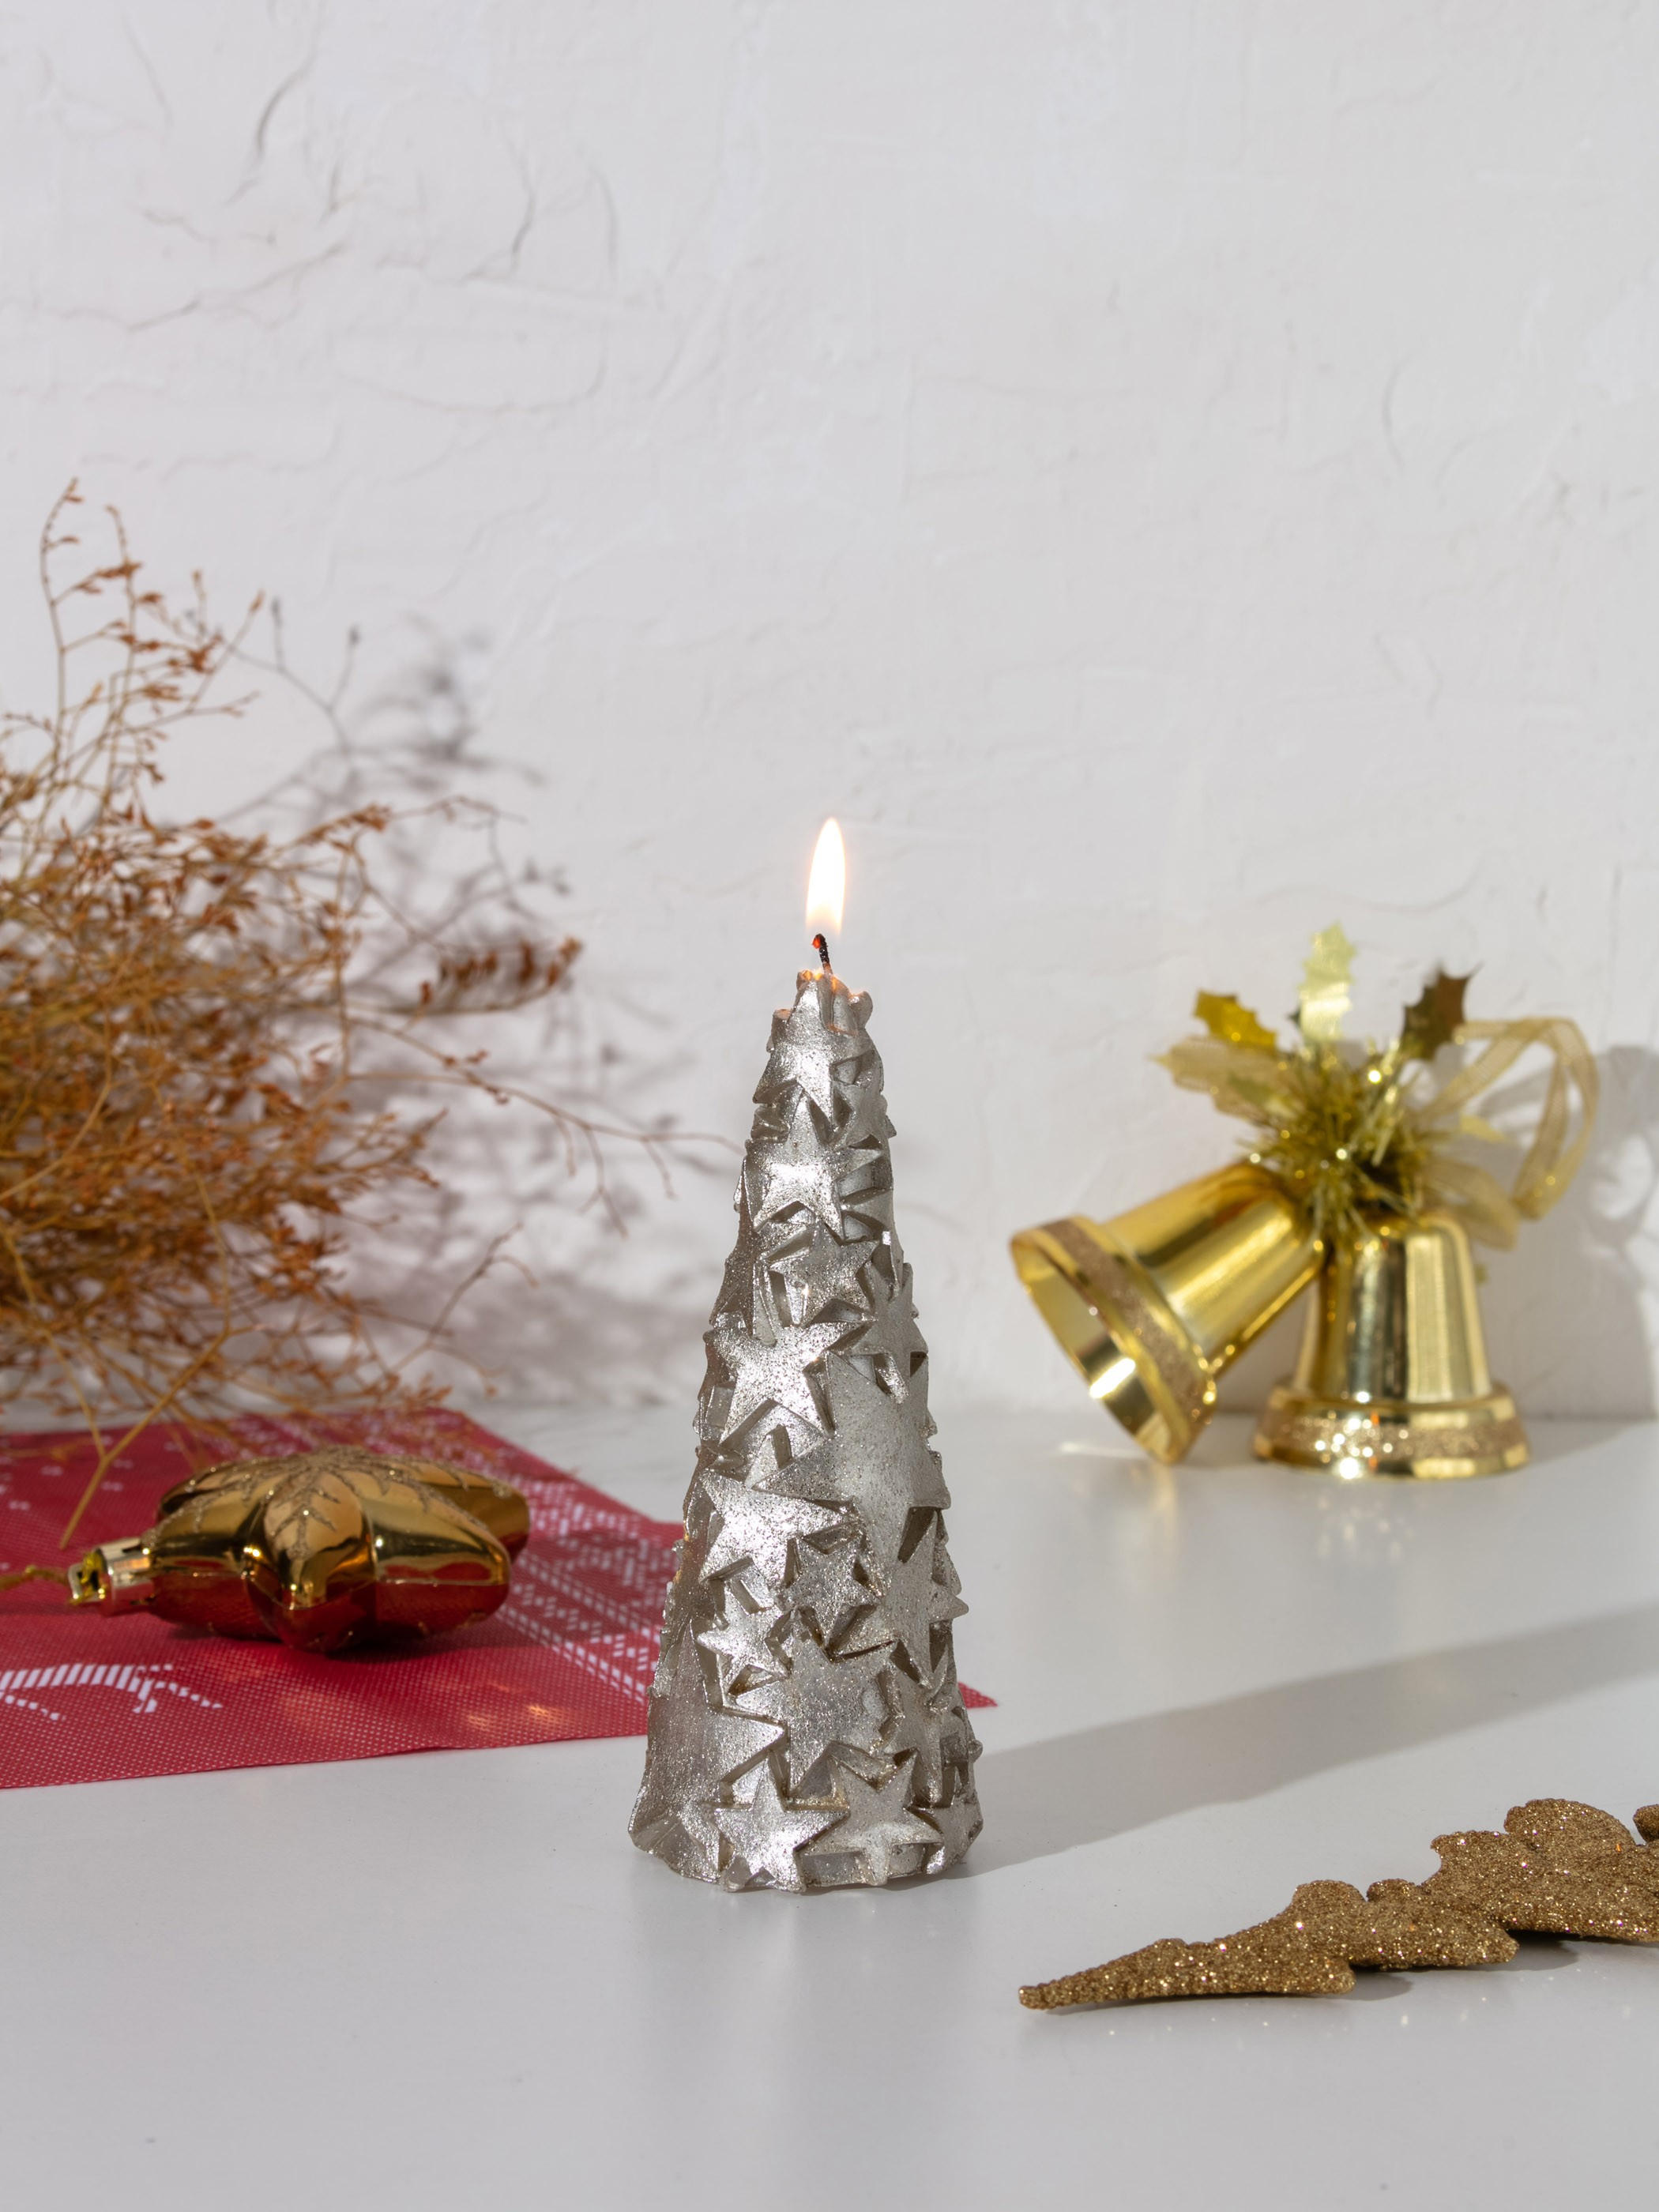 YELLOW - Christmas Themed Decorative Candle - 0WG283Z8